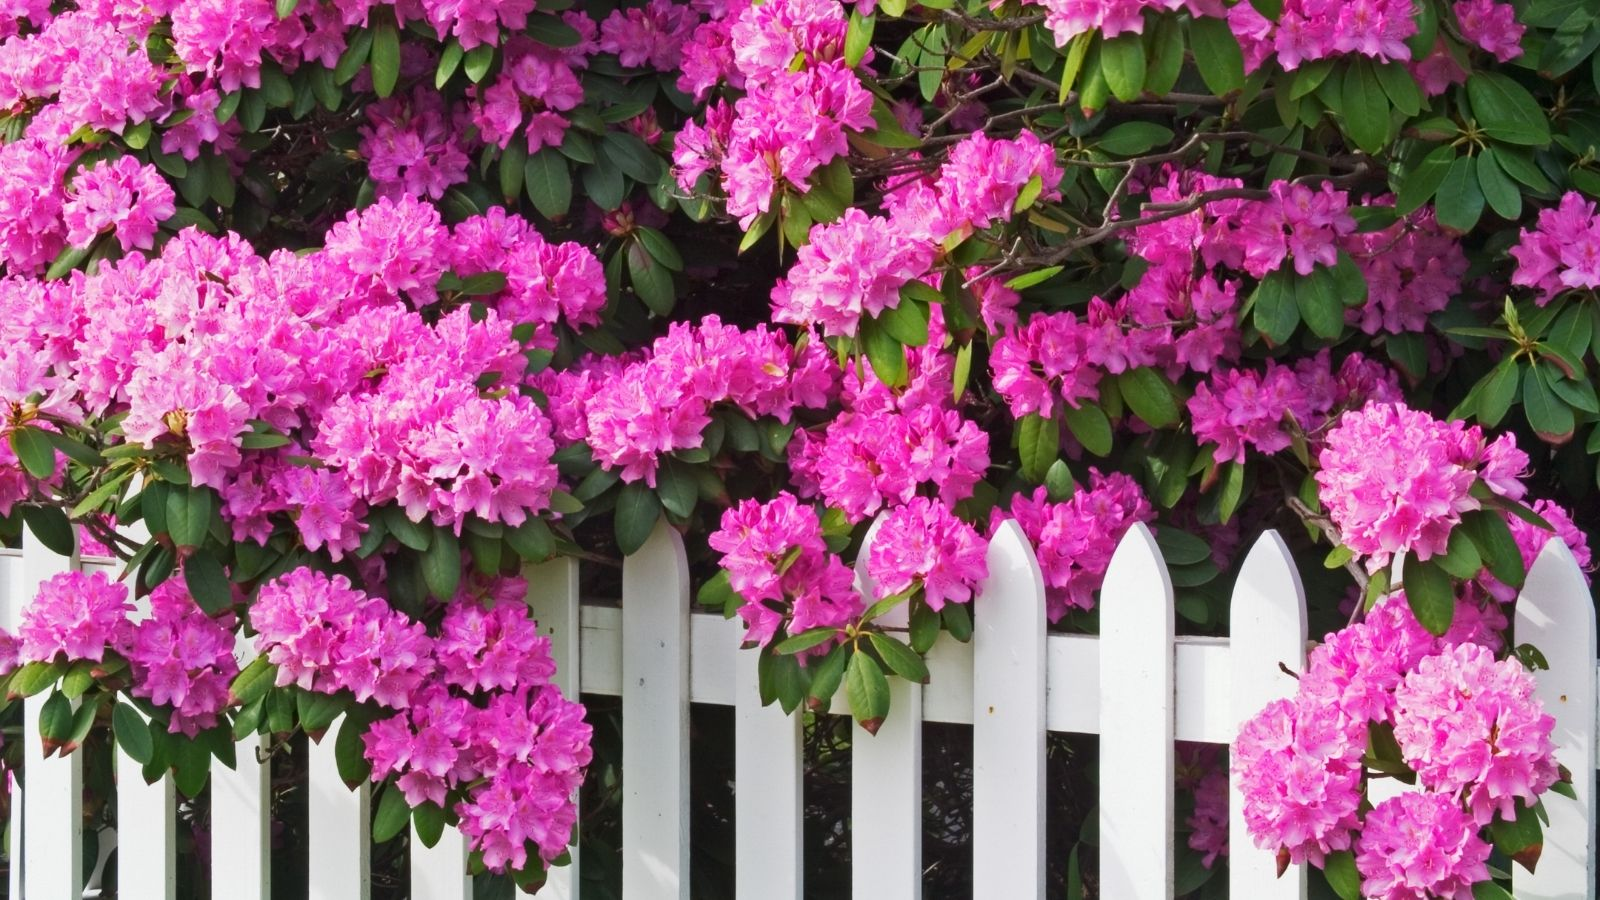 Bright pink rhododendrons hanging over white picket fence